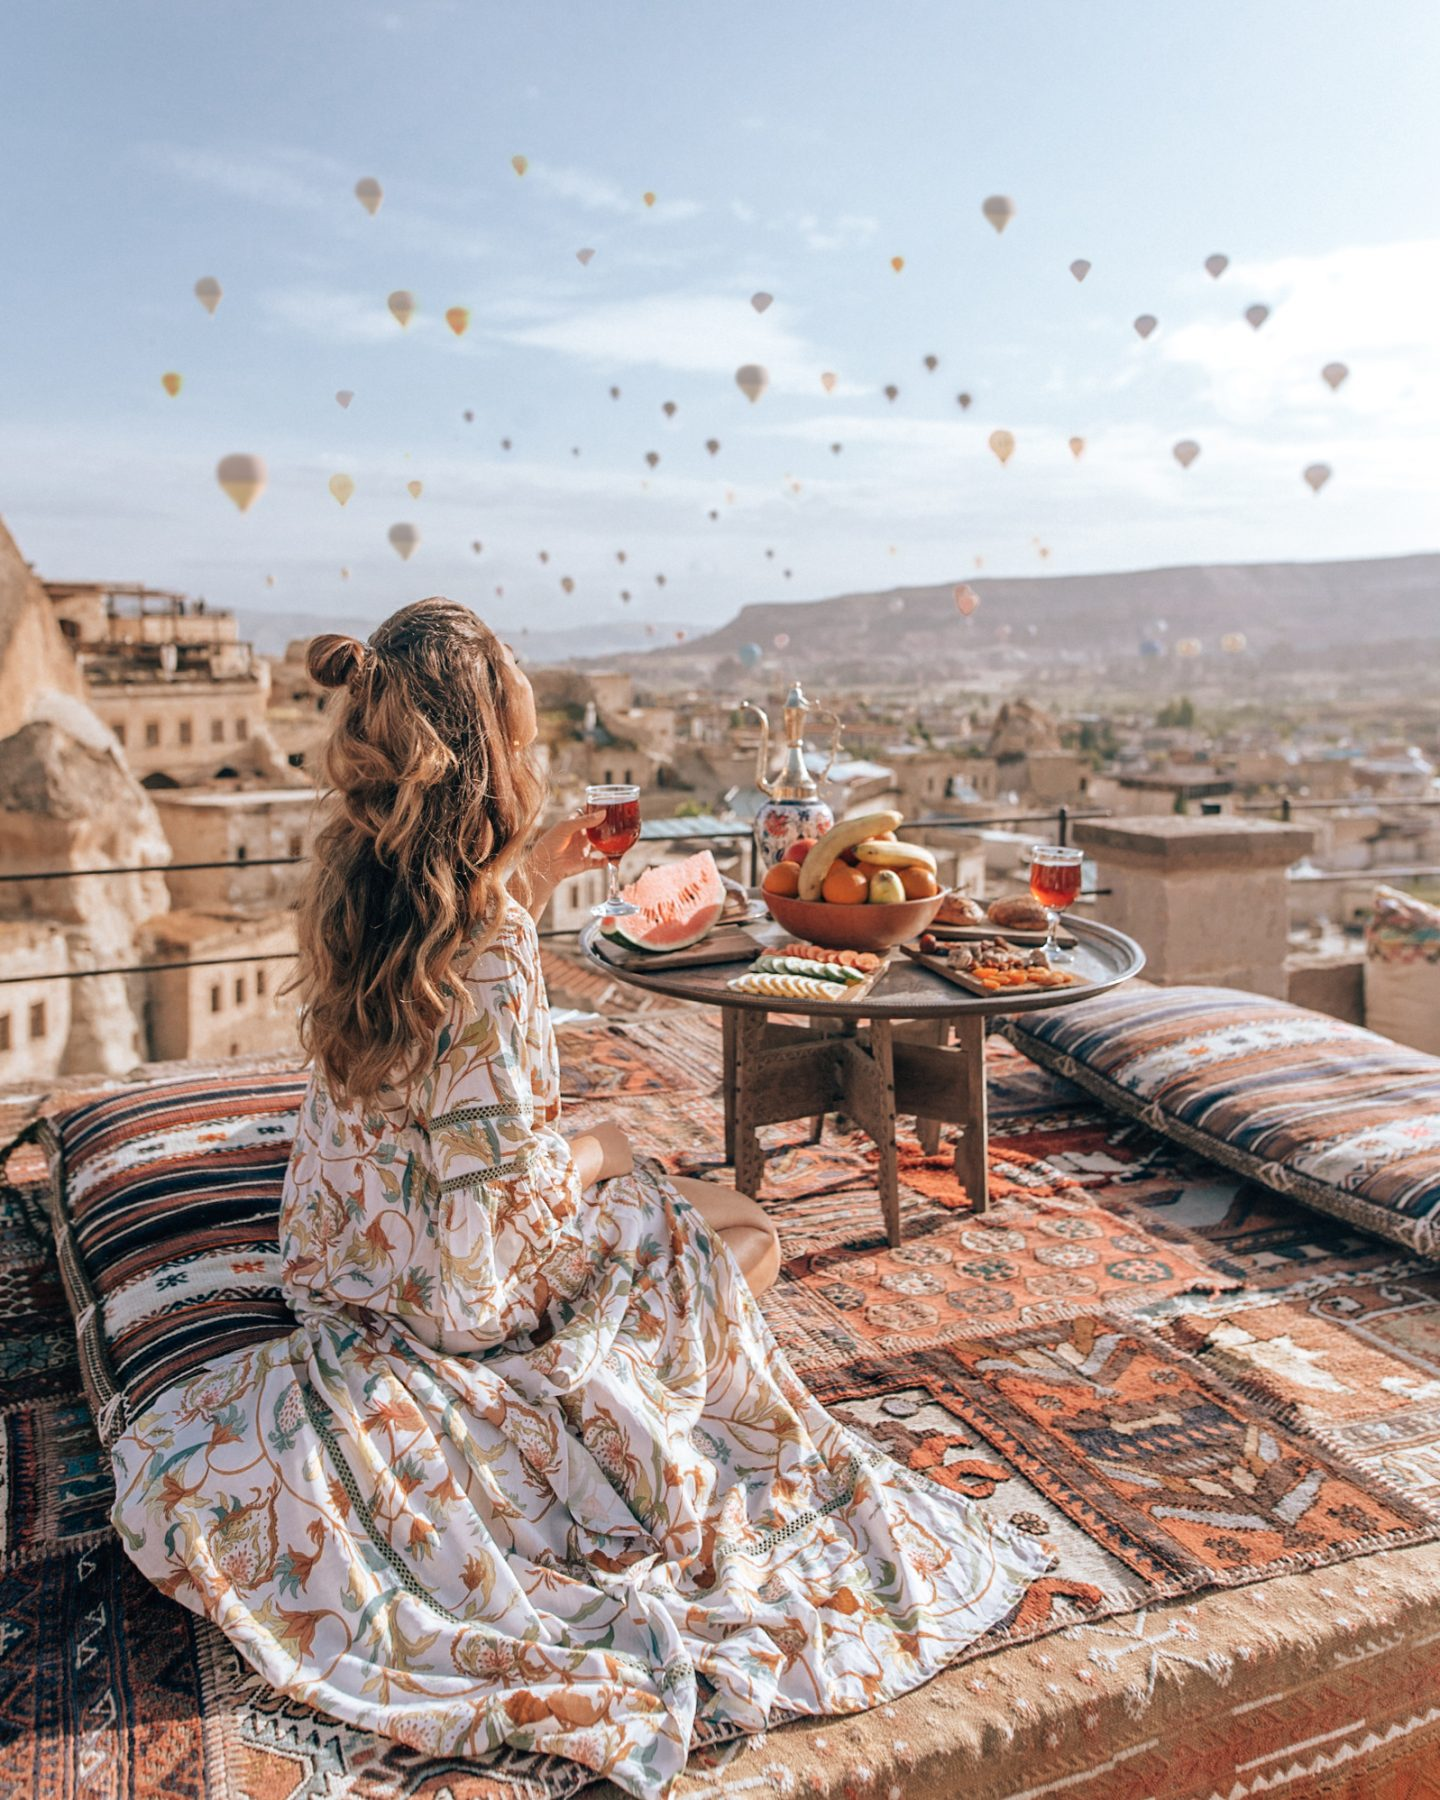 Watching a hot air balloon sunrise in Cappadocia